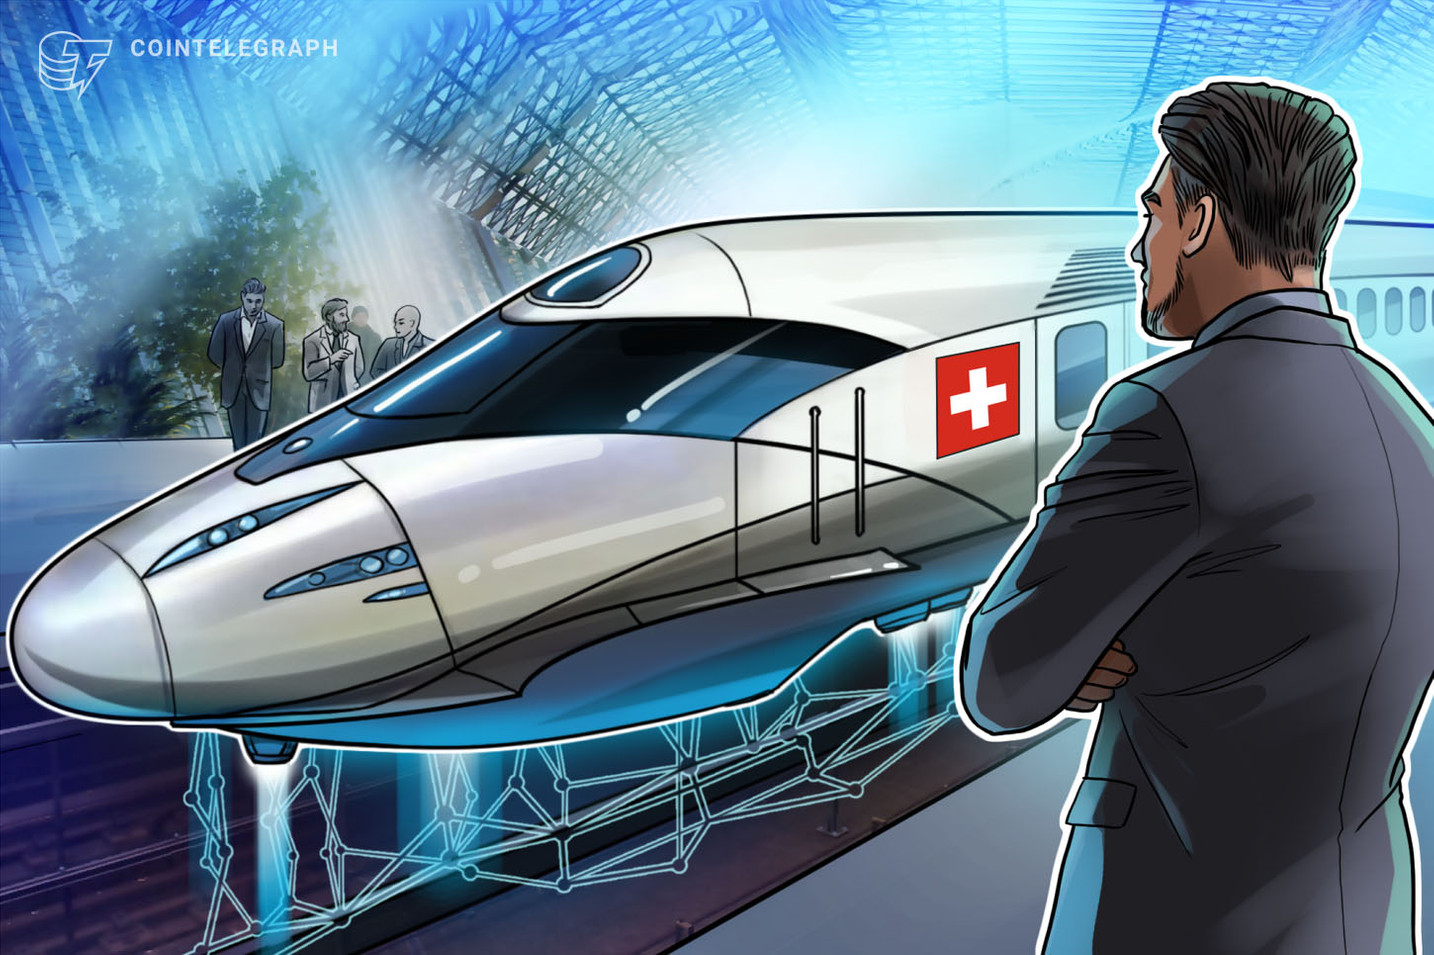 National Swiss Railway Operator Completes Pilot of Blockchain ID Management System